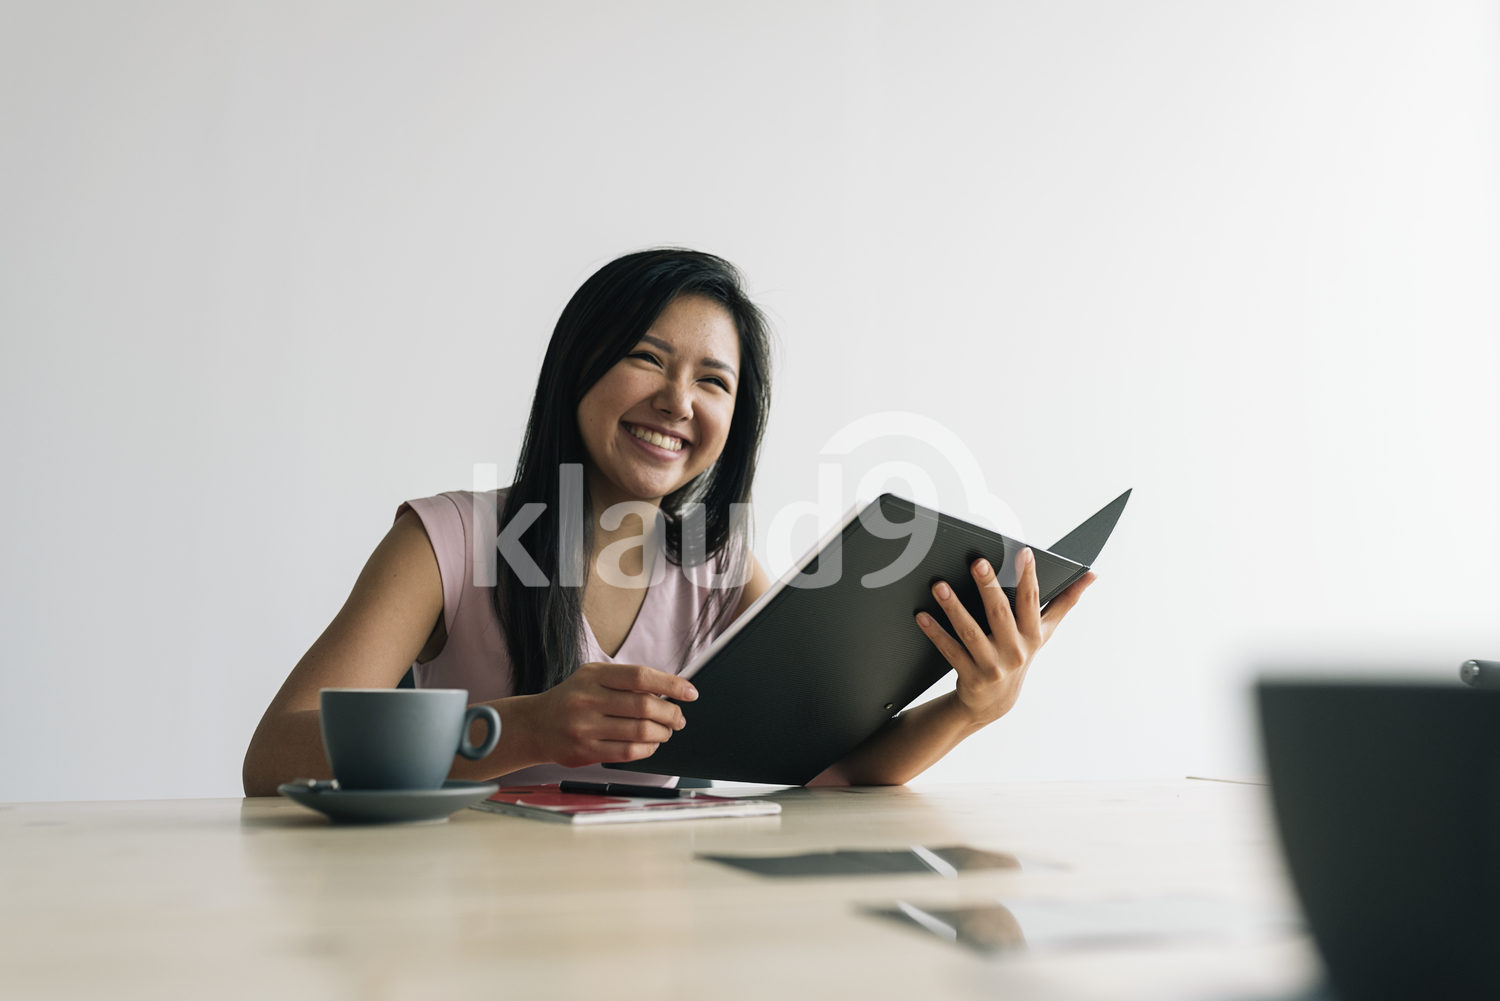 Happy Asian woman smiling holding documents